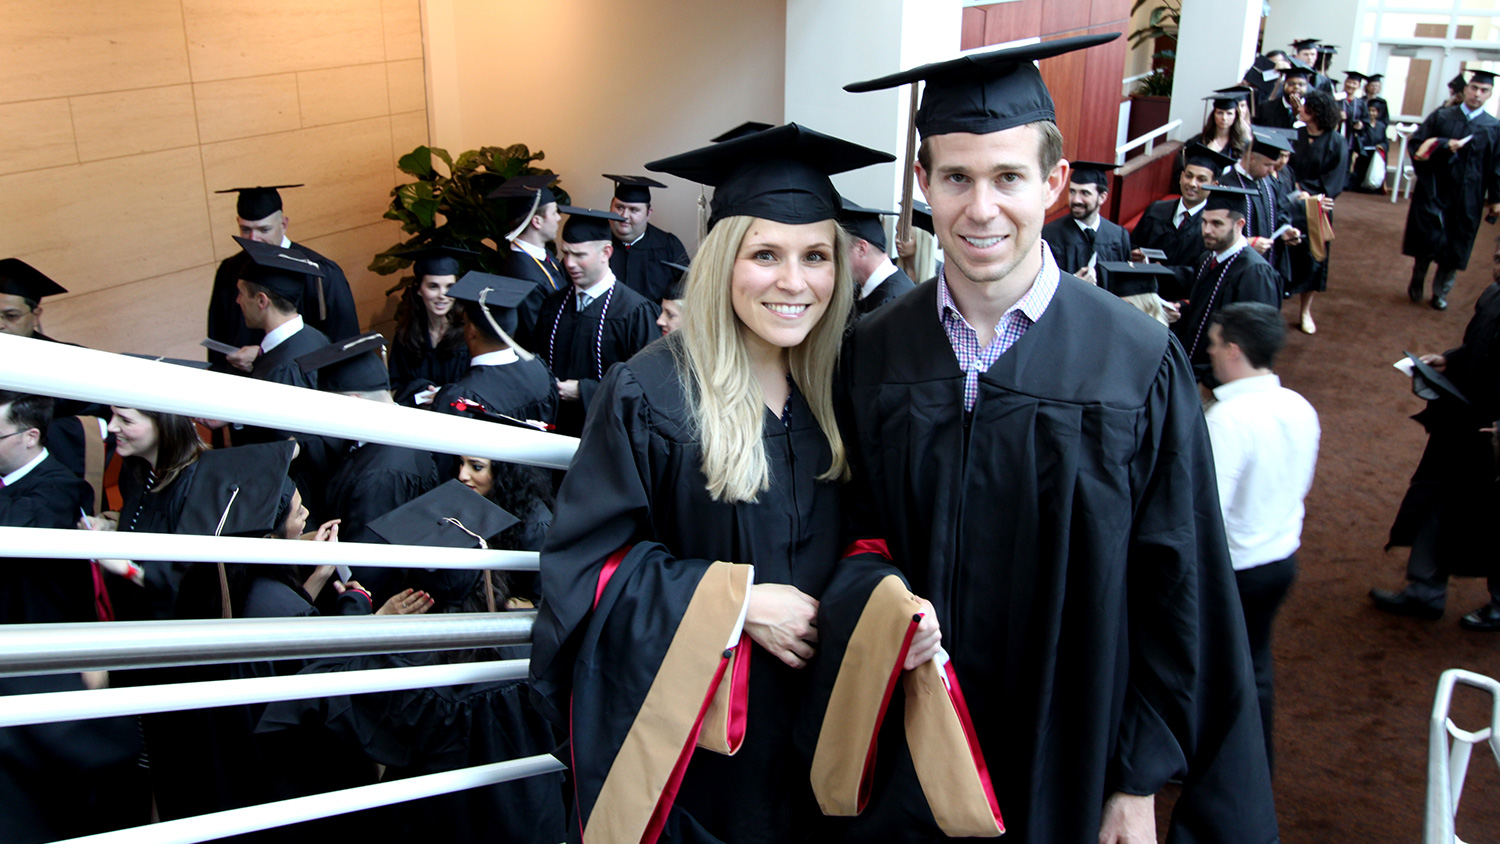 Nicole and Robert Panor with their graduate hoods prior to lining up for the Jenkins MBA Hooding Ceremony.